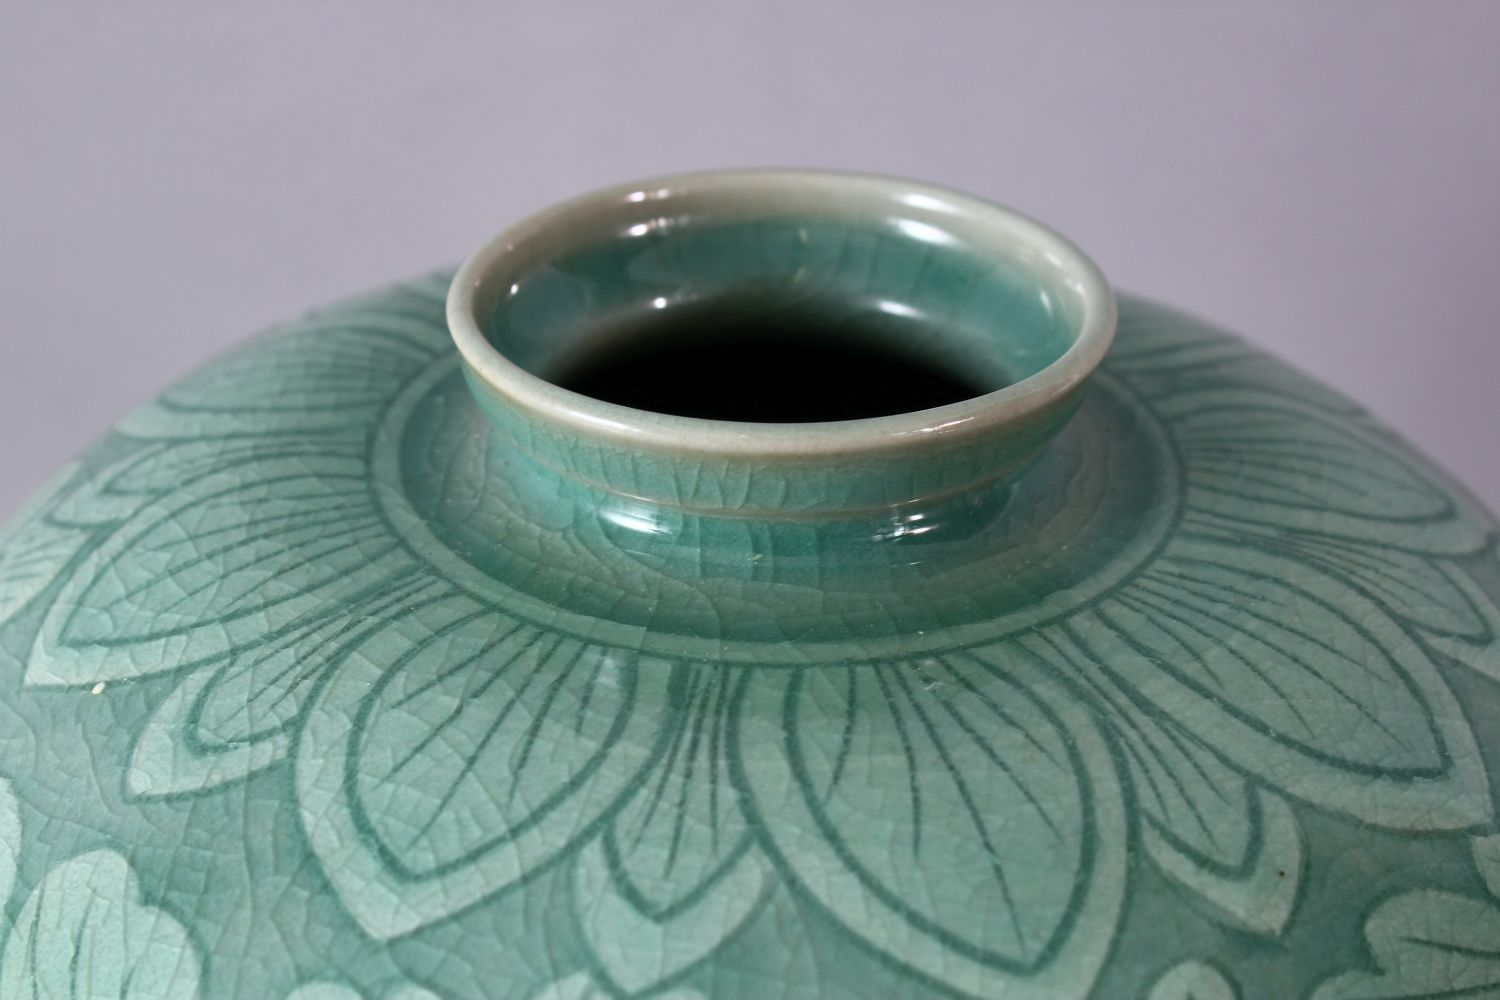 A LARGE KOREAN CELEDON VASE, the body with srolling foliage, signed, 38cm high. - Image 5 of 7